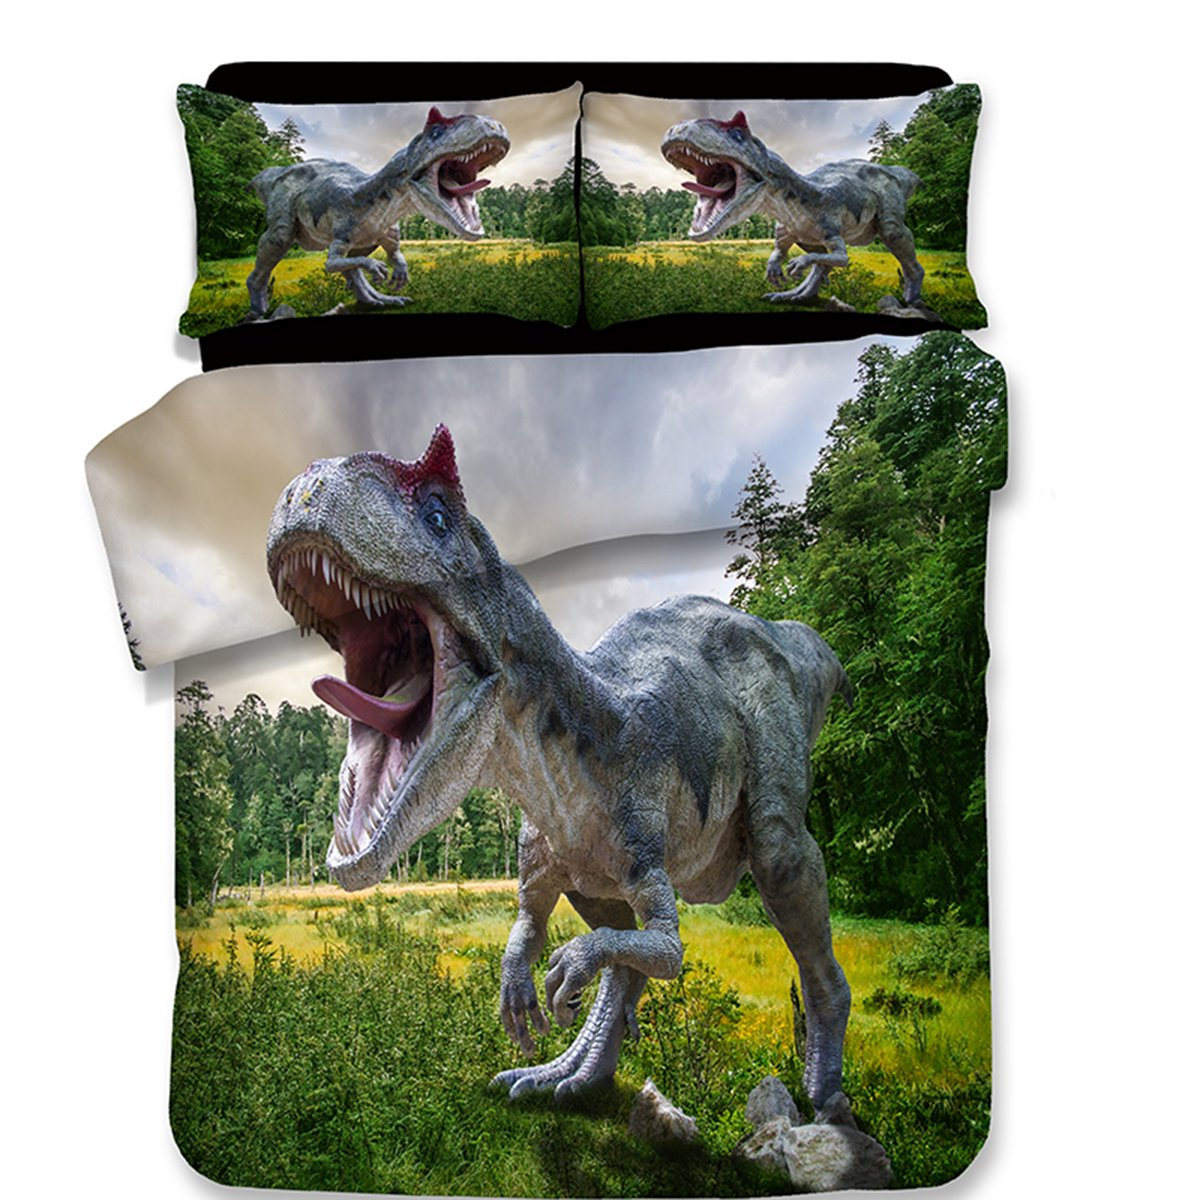 Koongso 3D Dinosaur in the Jungle Forest Bedding Sets Reversible 3 Pieces Soft Jurassic Duvet Cover Set for Kids Boys Teens,Twin/Full/Queen/King Size